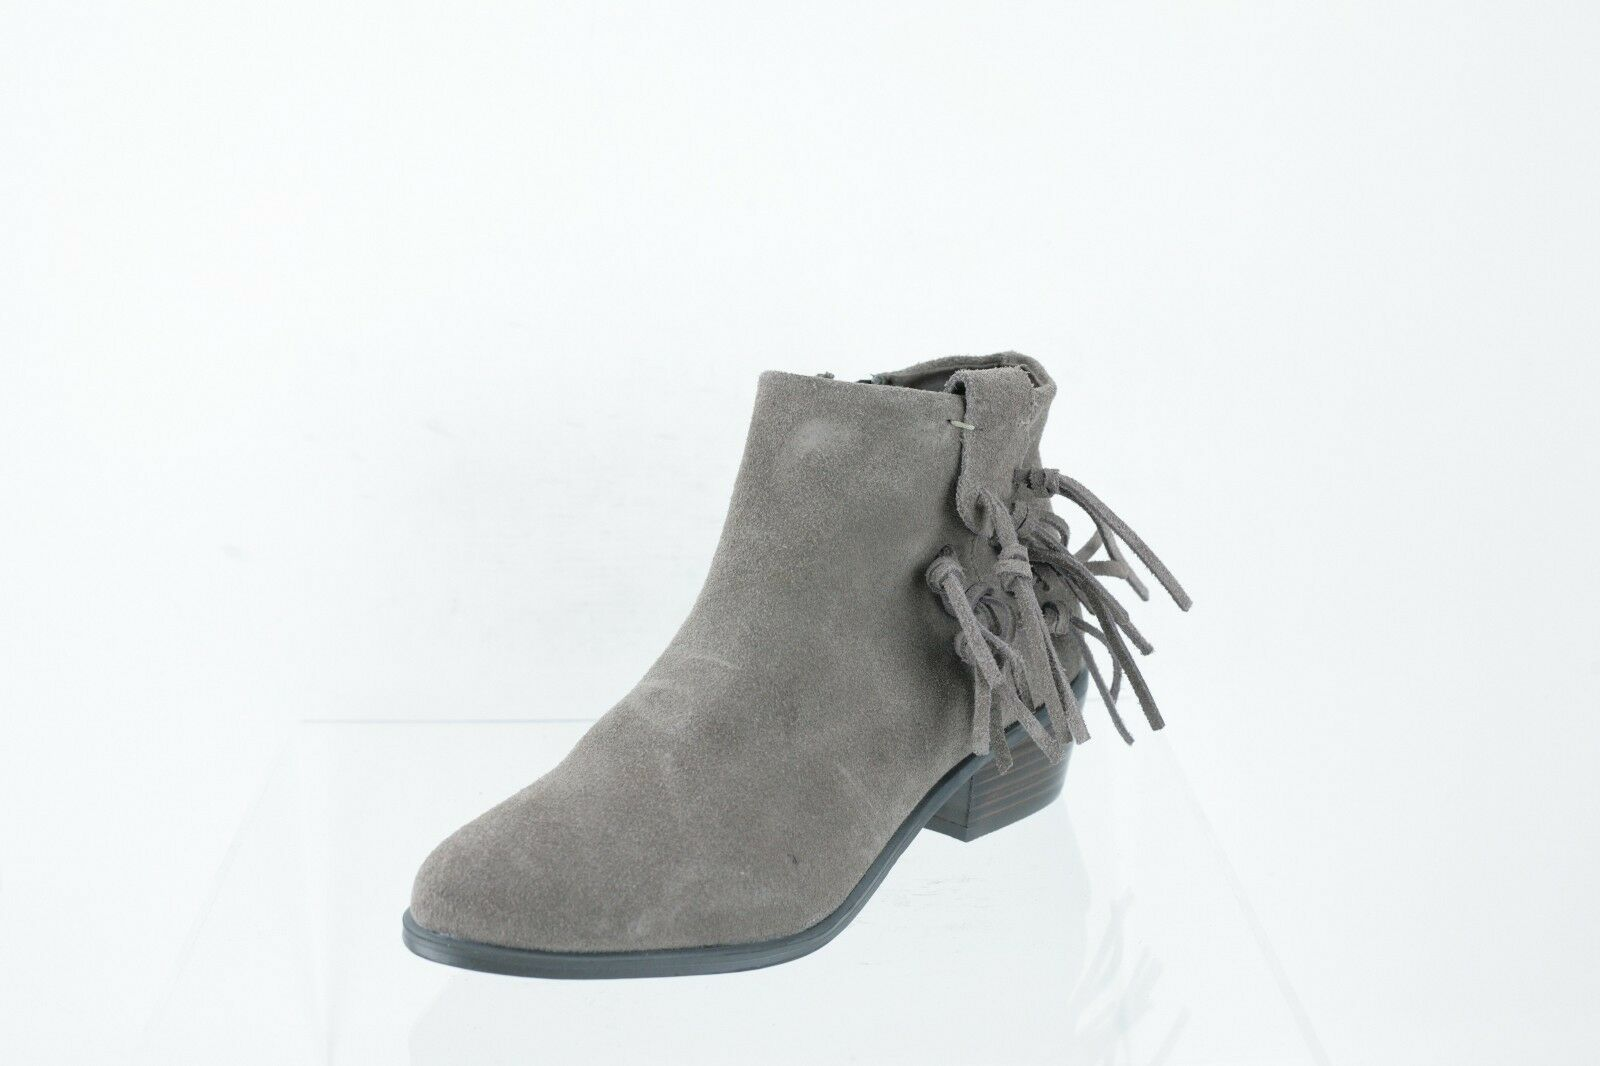 Steve Madden Rizdi Taupe Suede Ankle Boots Women's shoes Size 6 M NEW